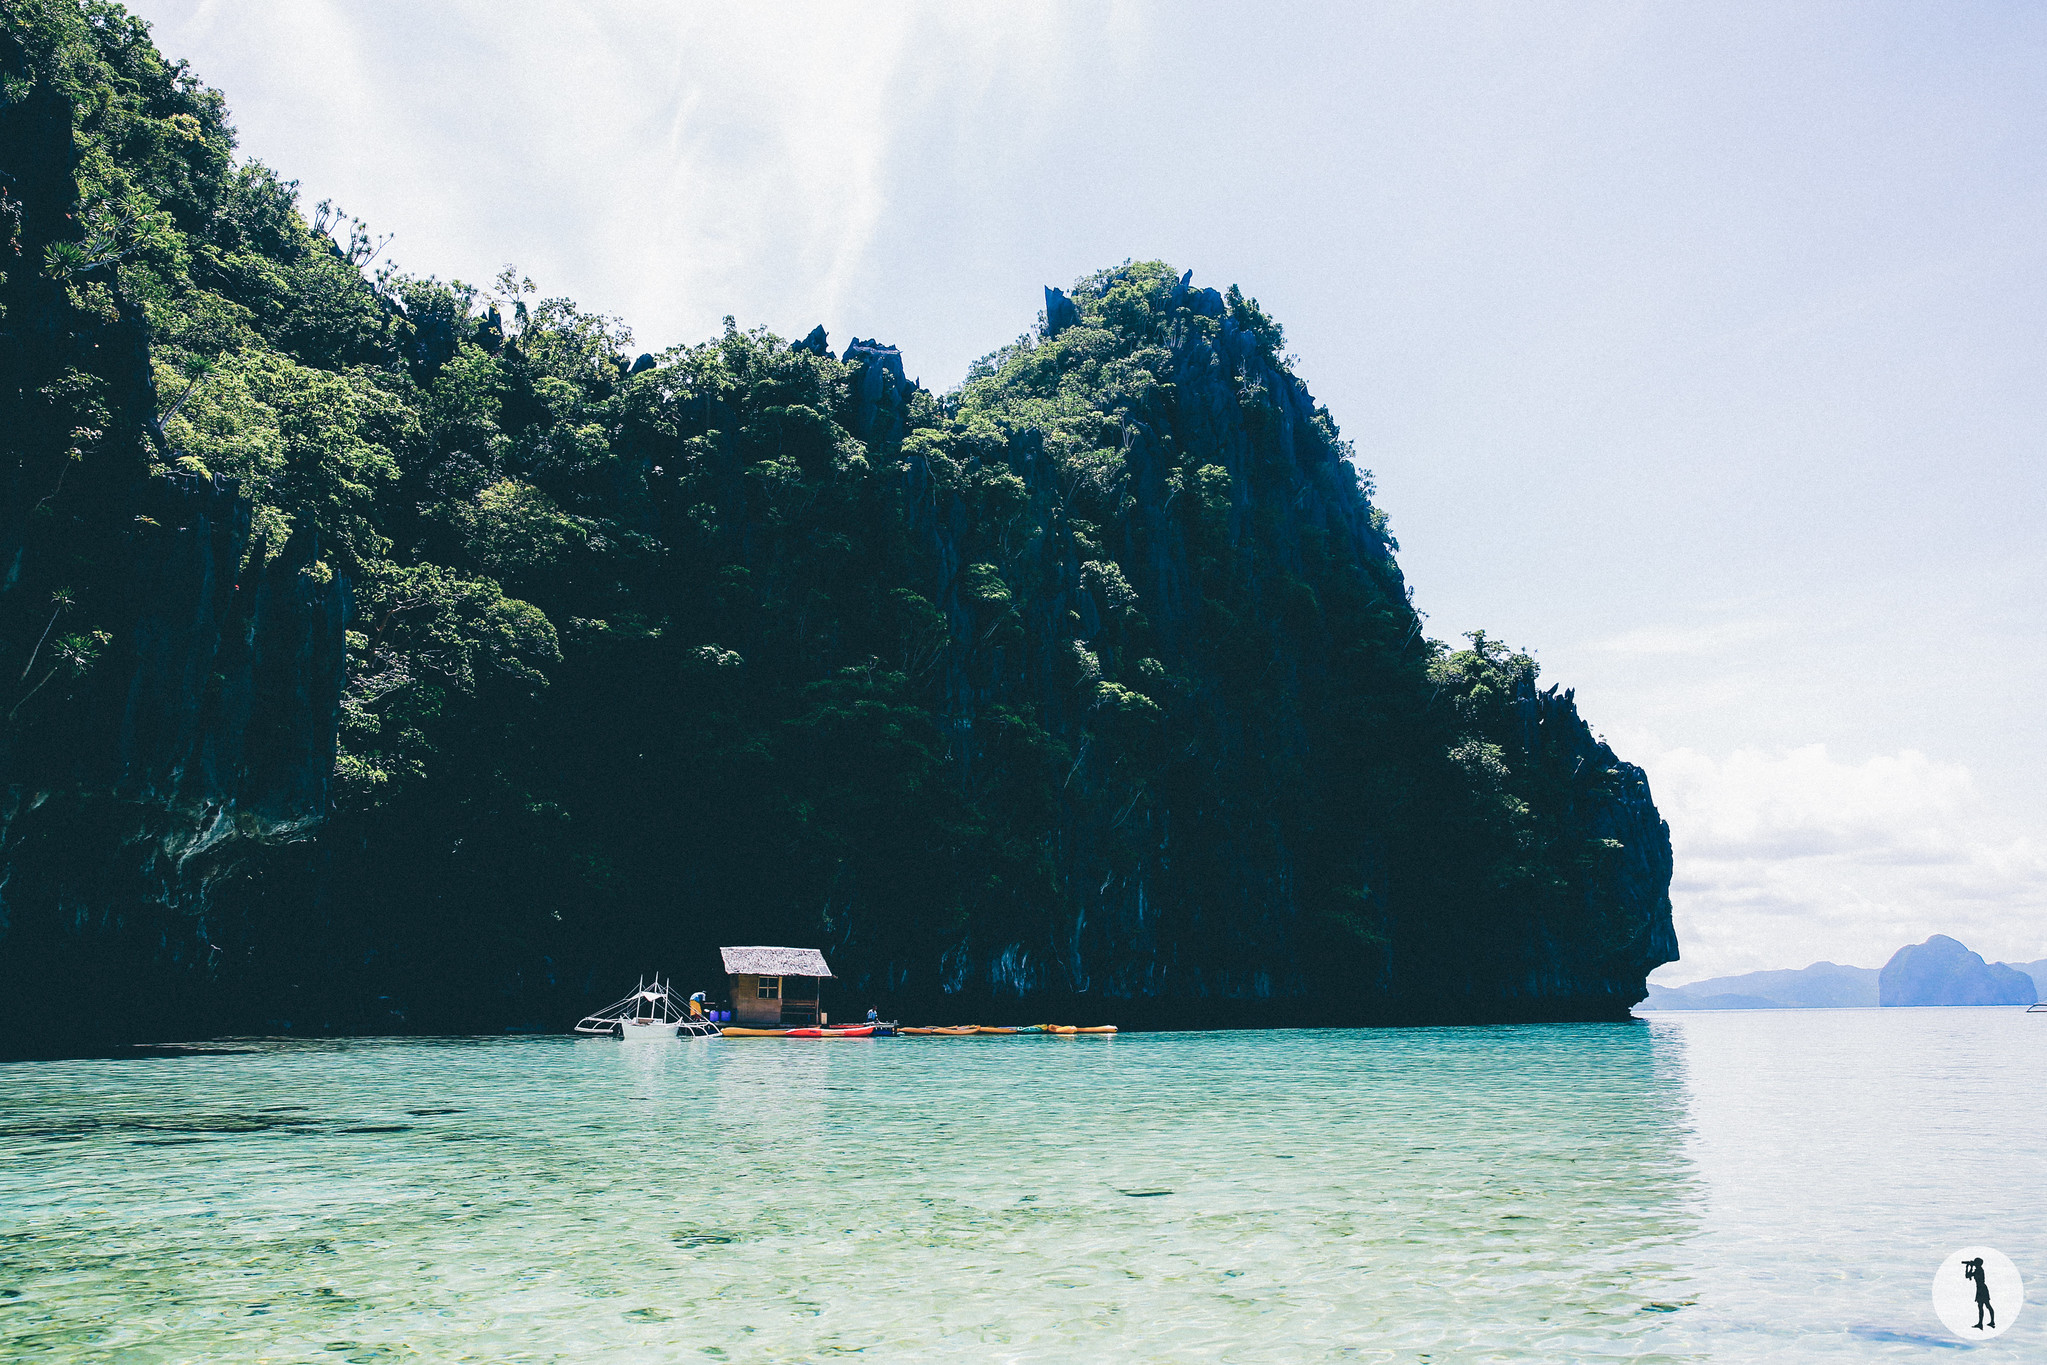 Travel to the Philippines - Archipel de Bacuit, Palawan.